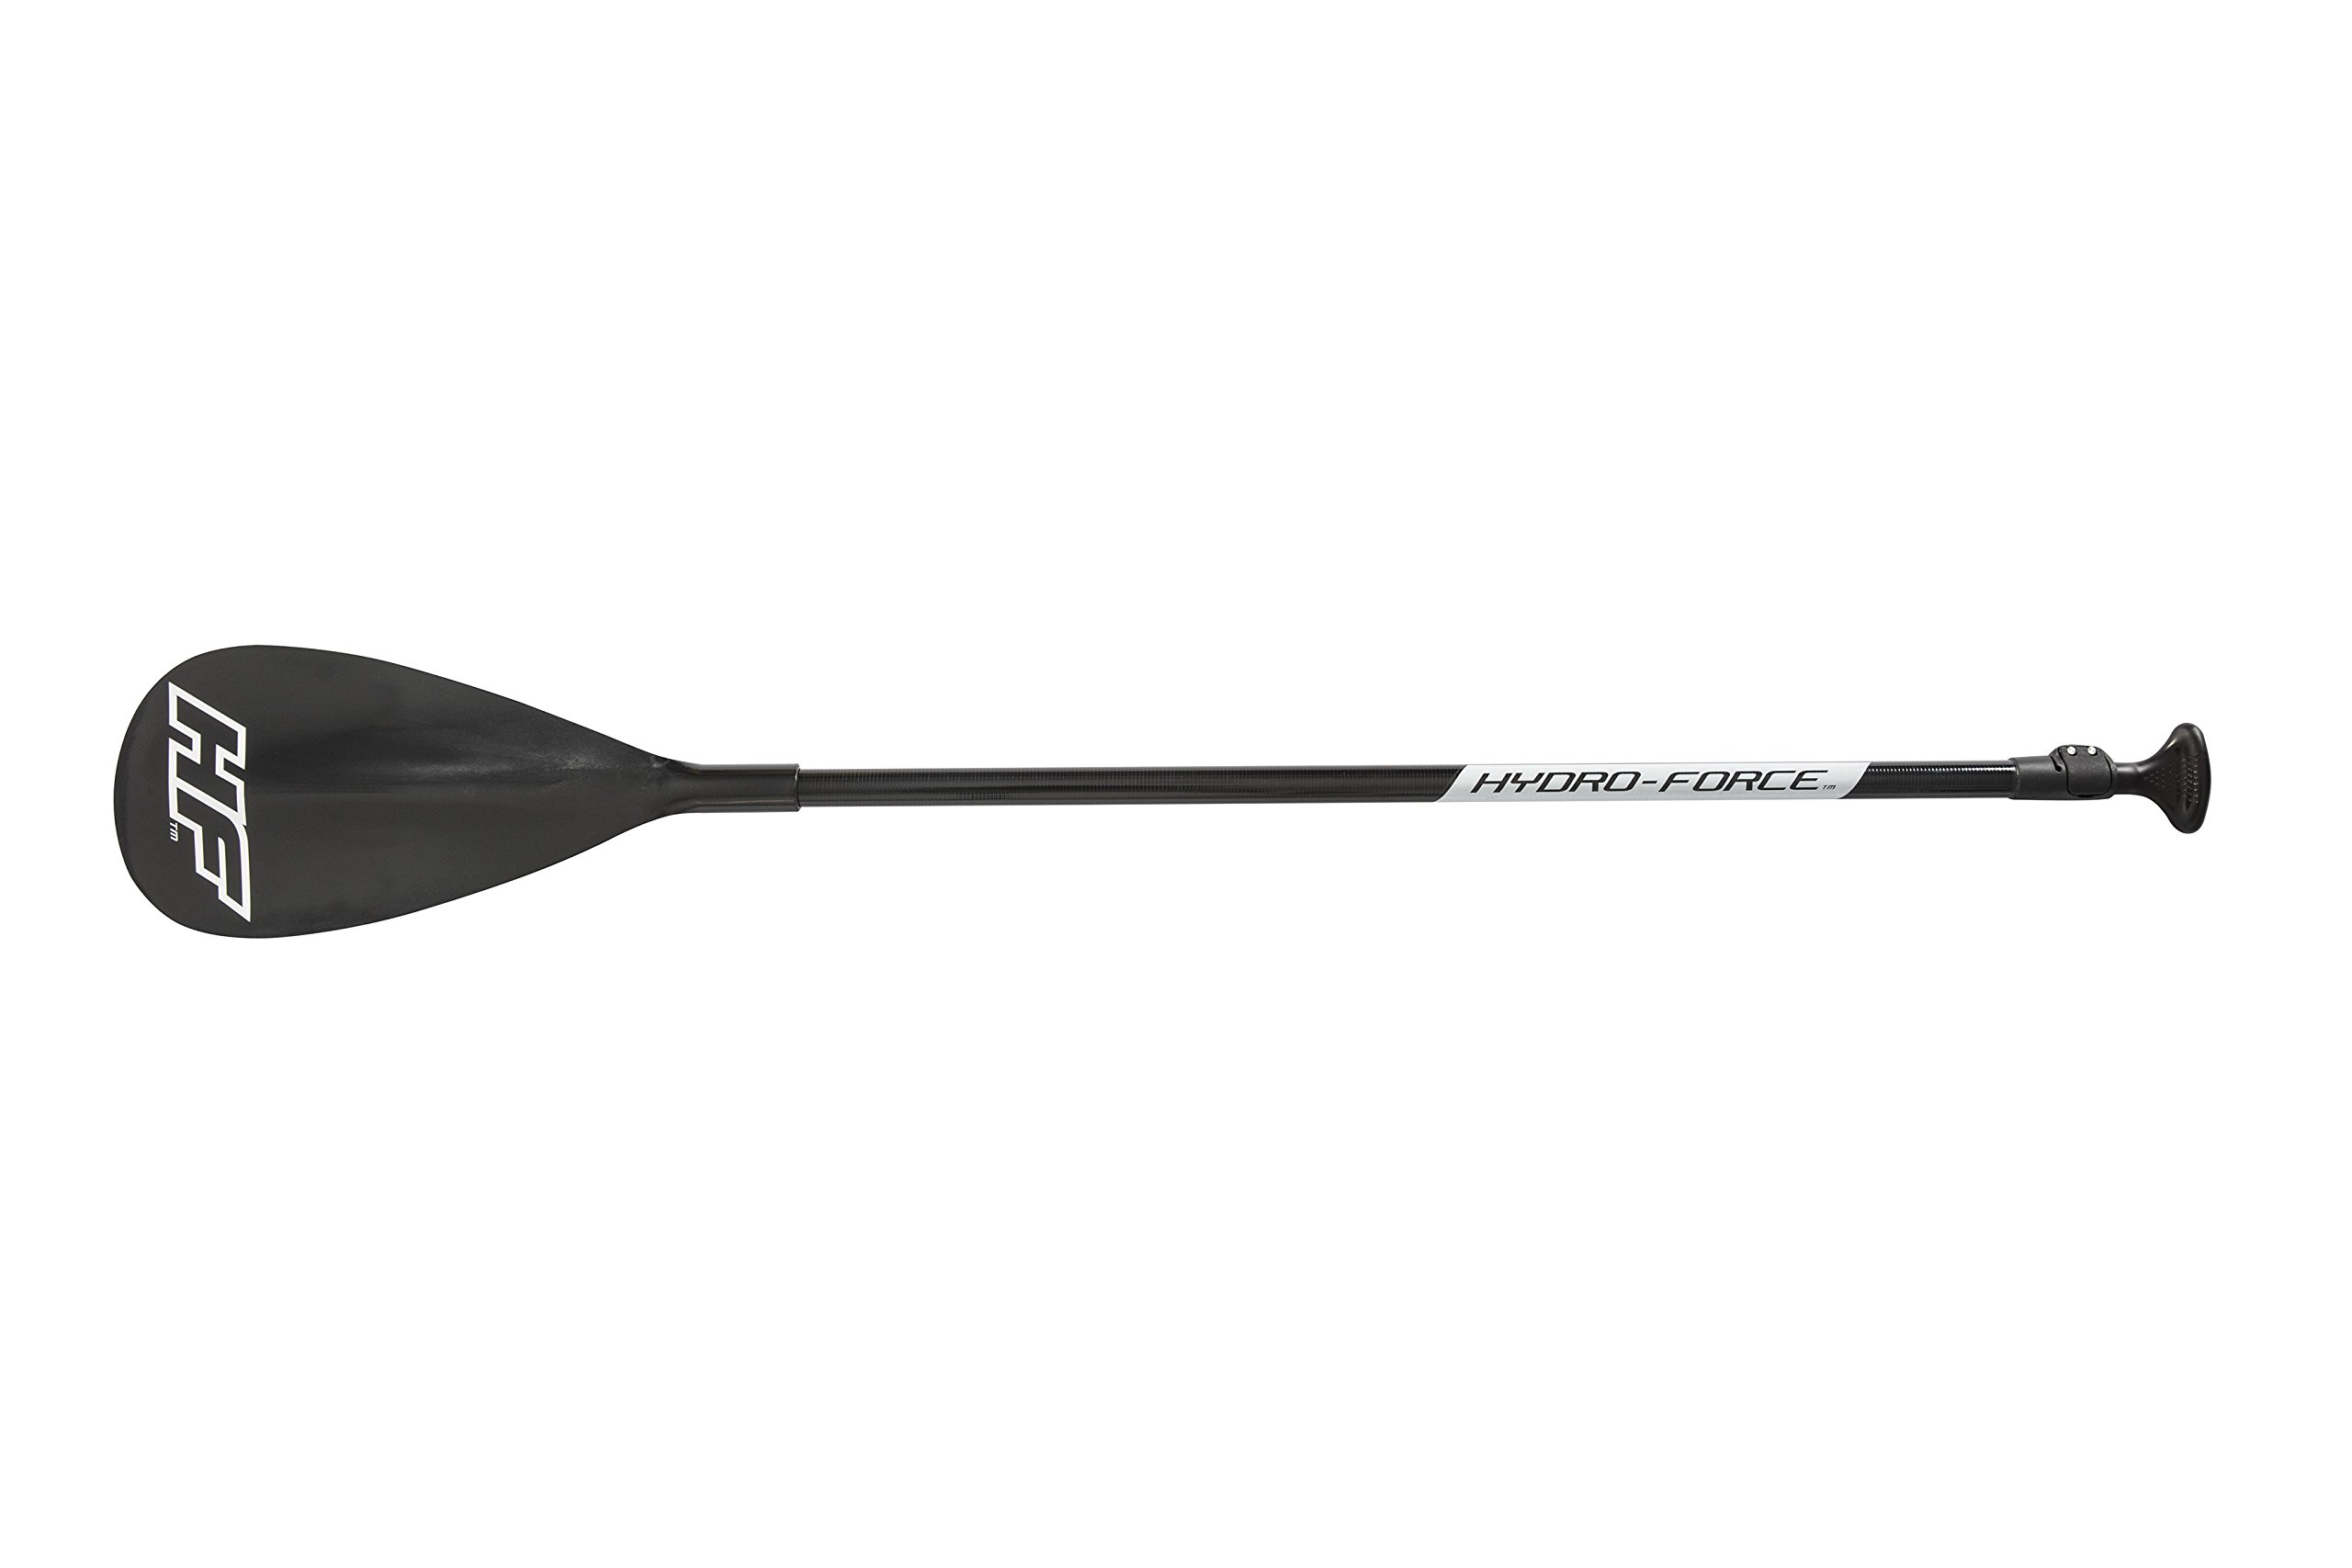 Bestway Hydro-Force Fiberglass Paddle, 85''